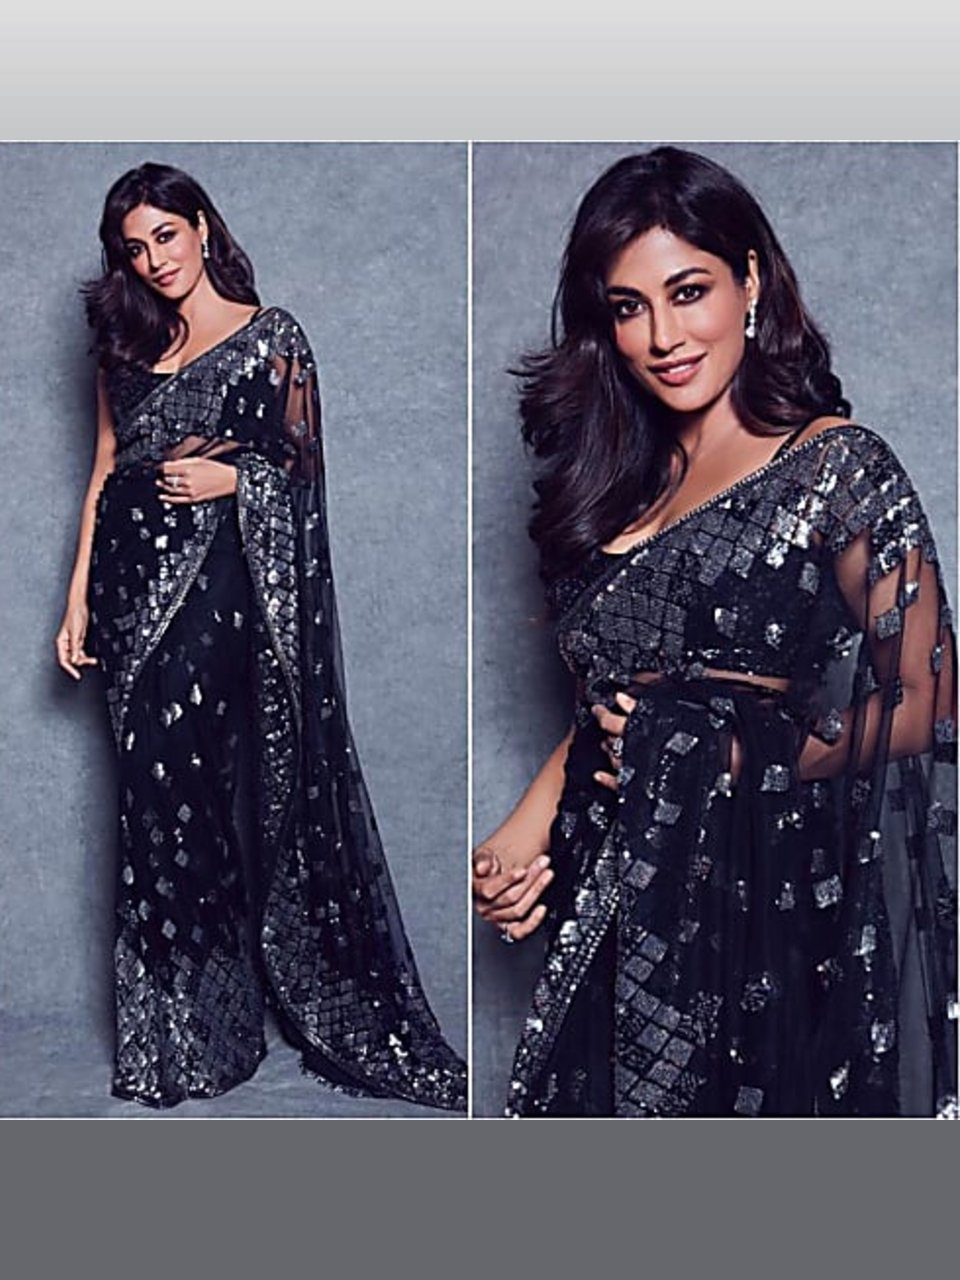 Chitrangada Singh KF3866 Bollywood Inspired Black Net Saree - Fashion Nation